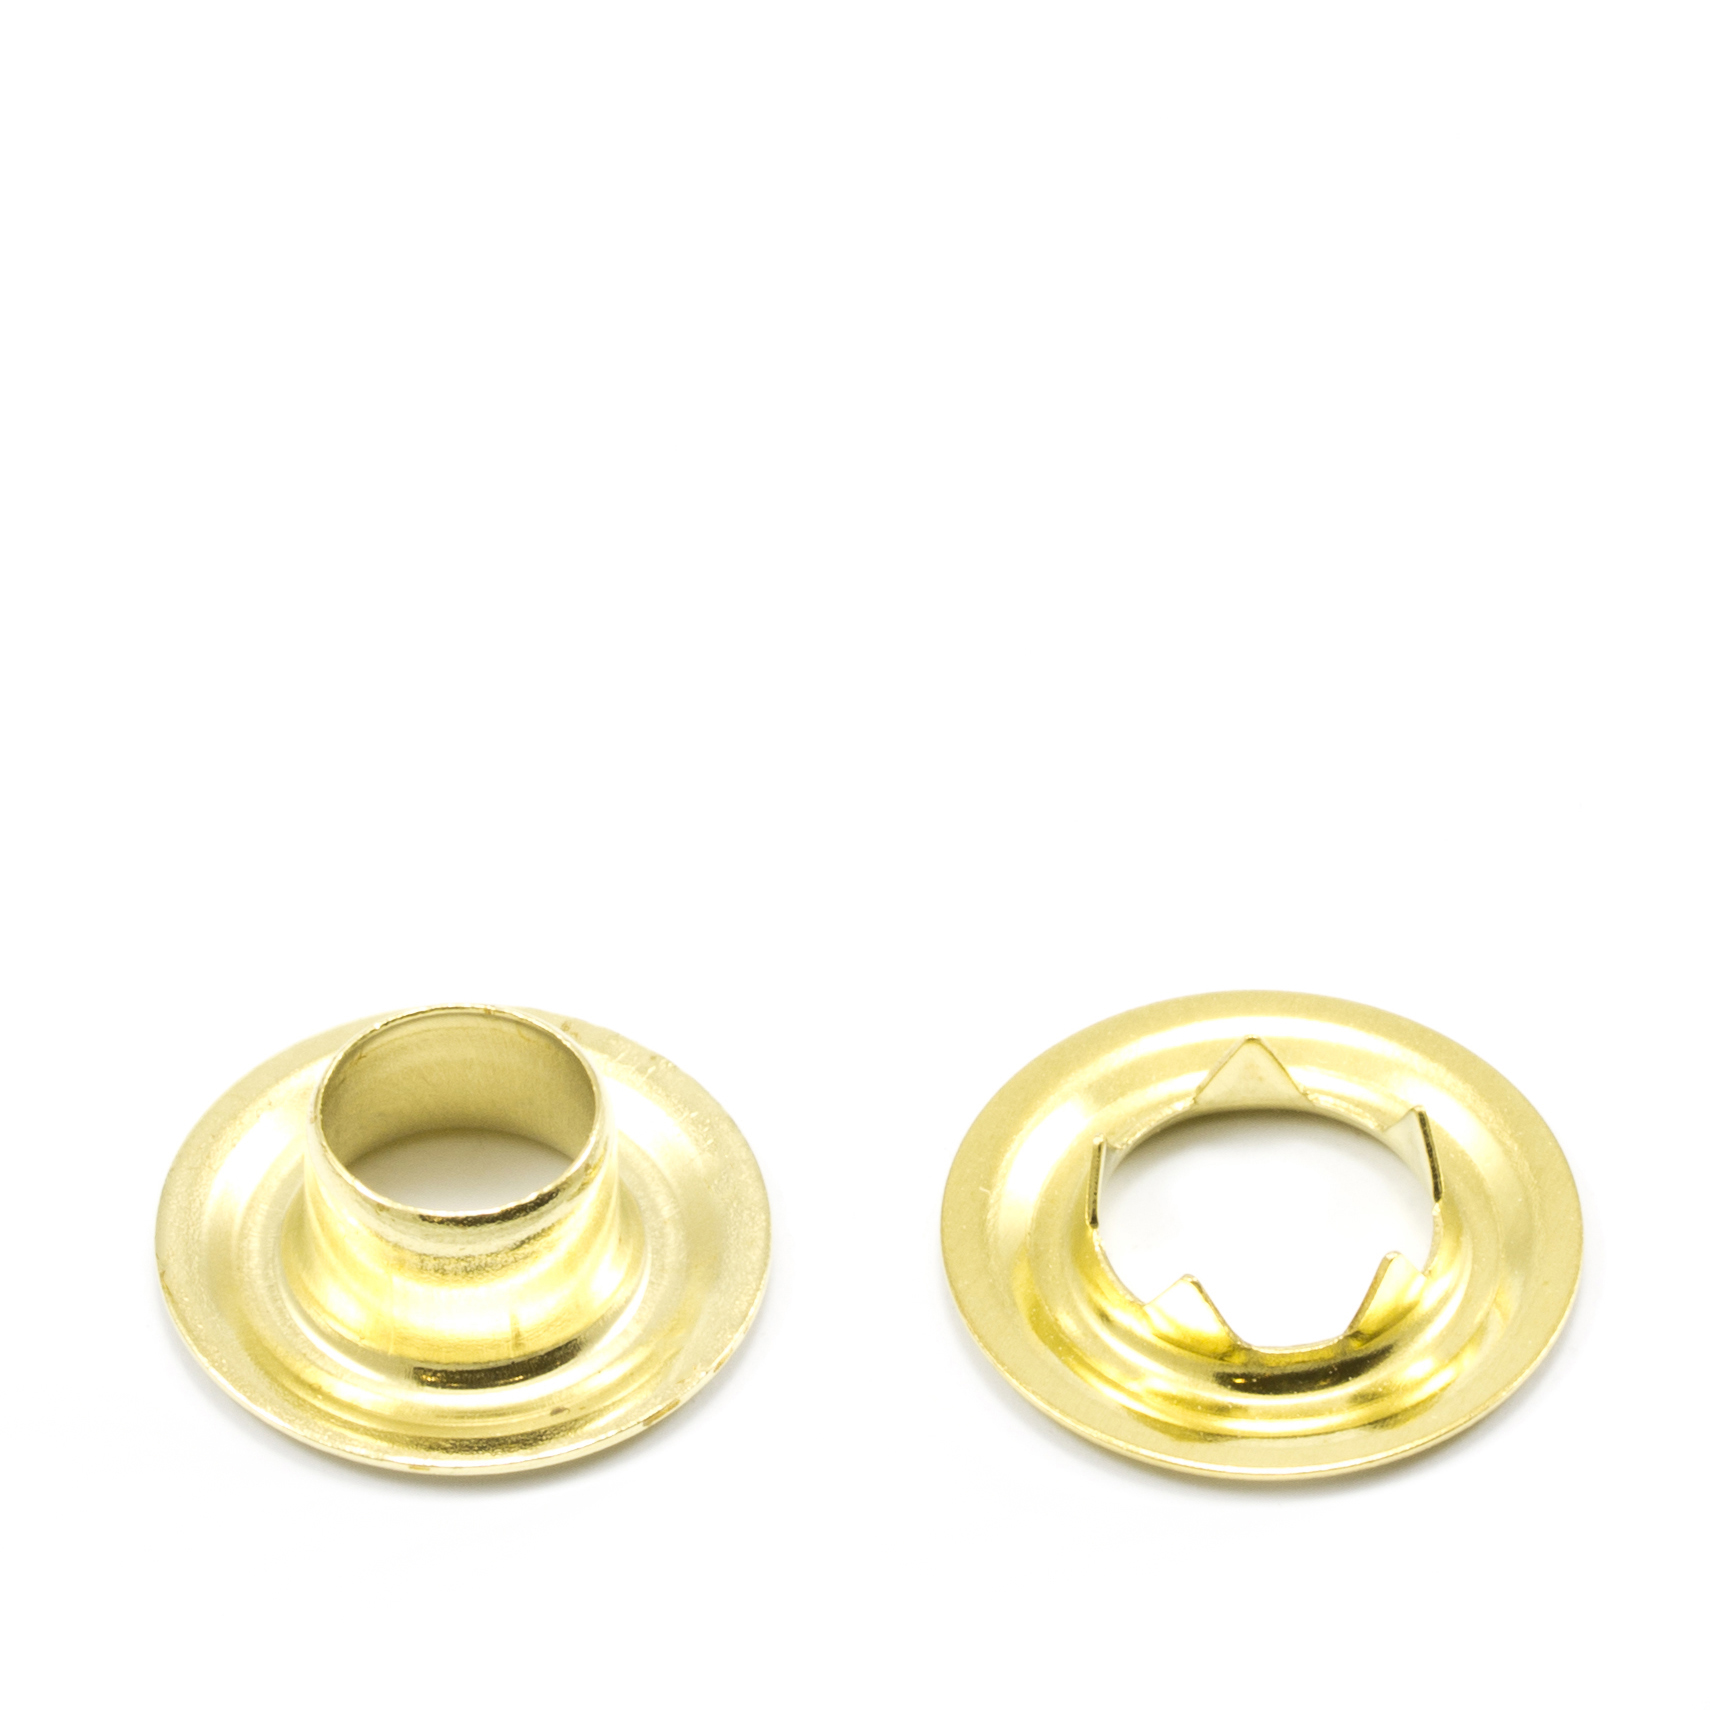 Grommet with Tooth Washer #0 Brass 1/4